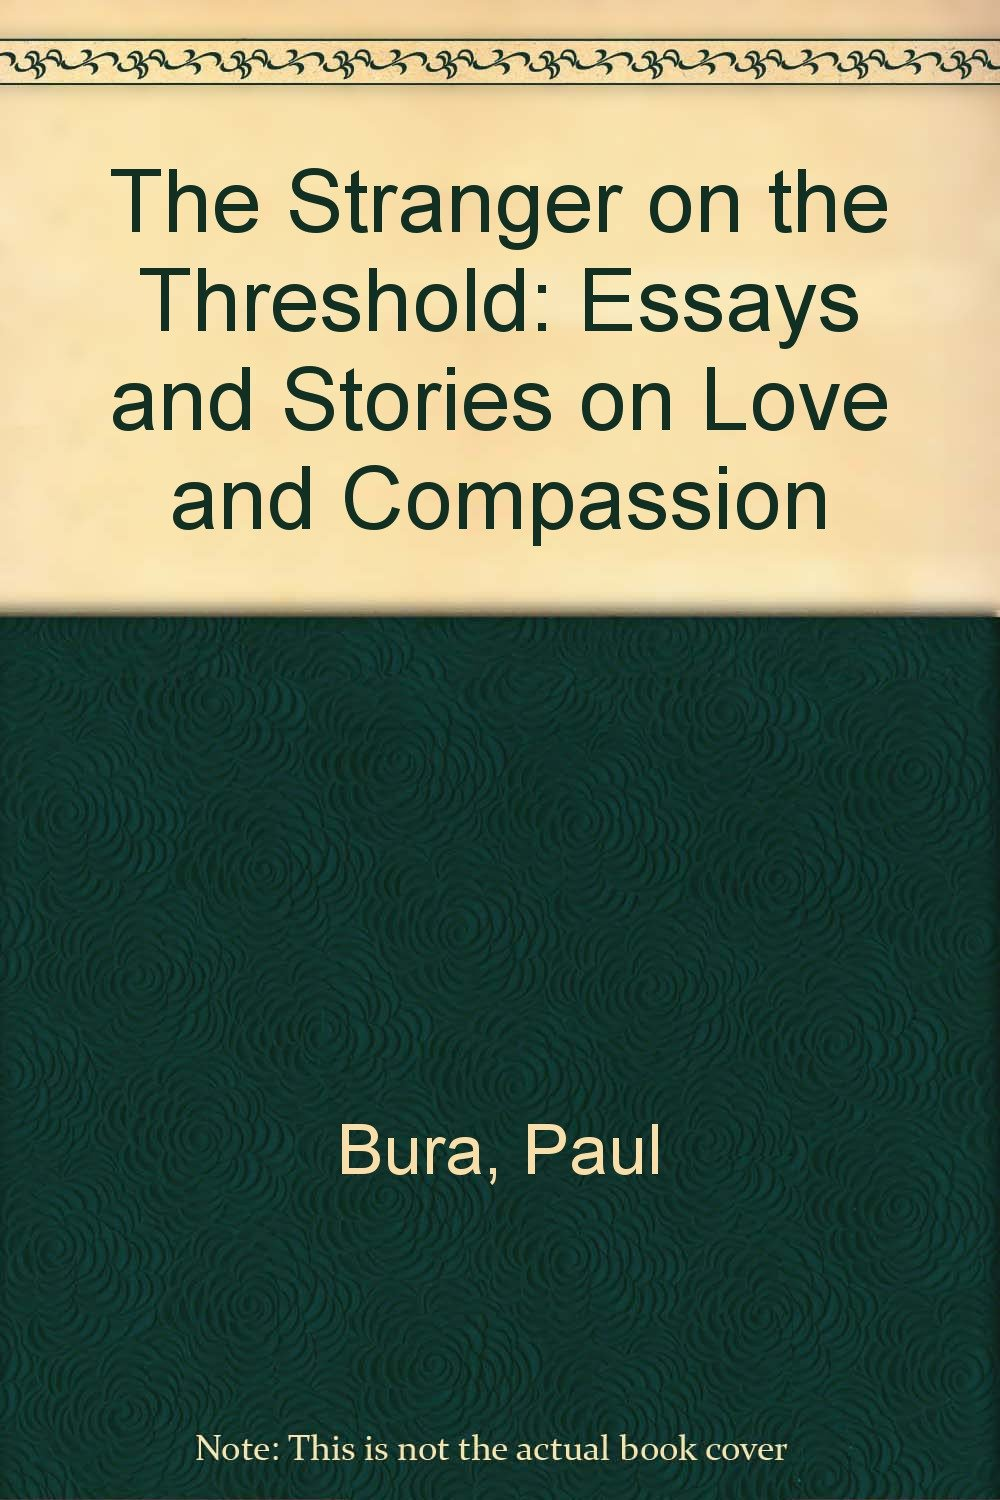 Argument Essay Sample Papers The Stranger On The Threshold Essays And Stories On Love And Compassion  Paul Bura  Amazoncom Books Romeo And Juliet Essay Thesis also How To Write A College Essay Paper The Stranger On The Threshold Essays And Stories On Love And  Term Papers And Essays